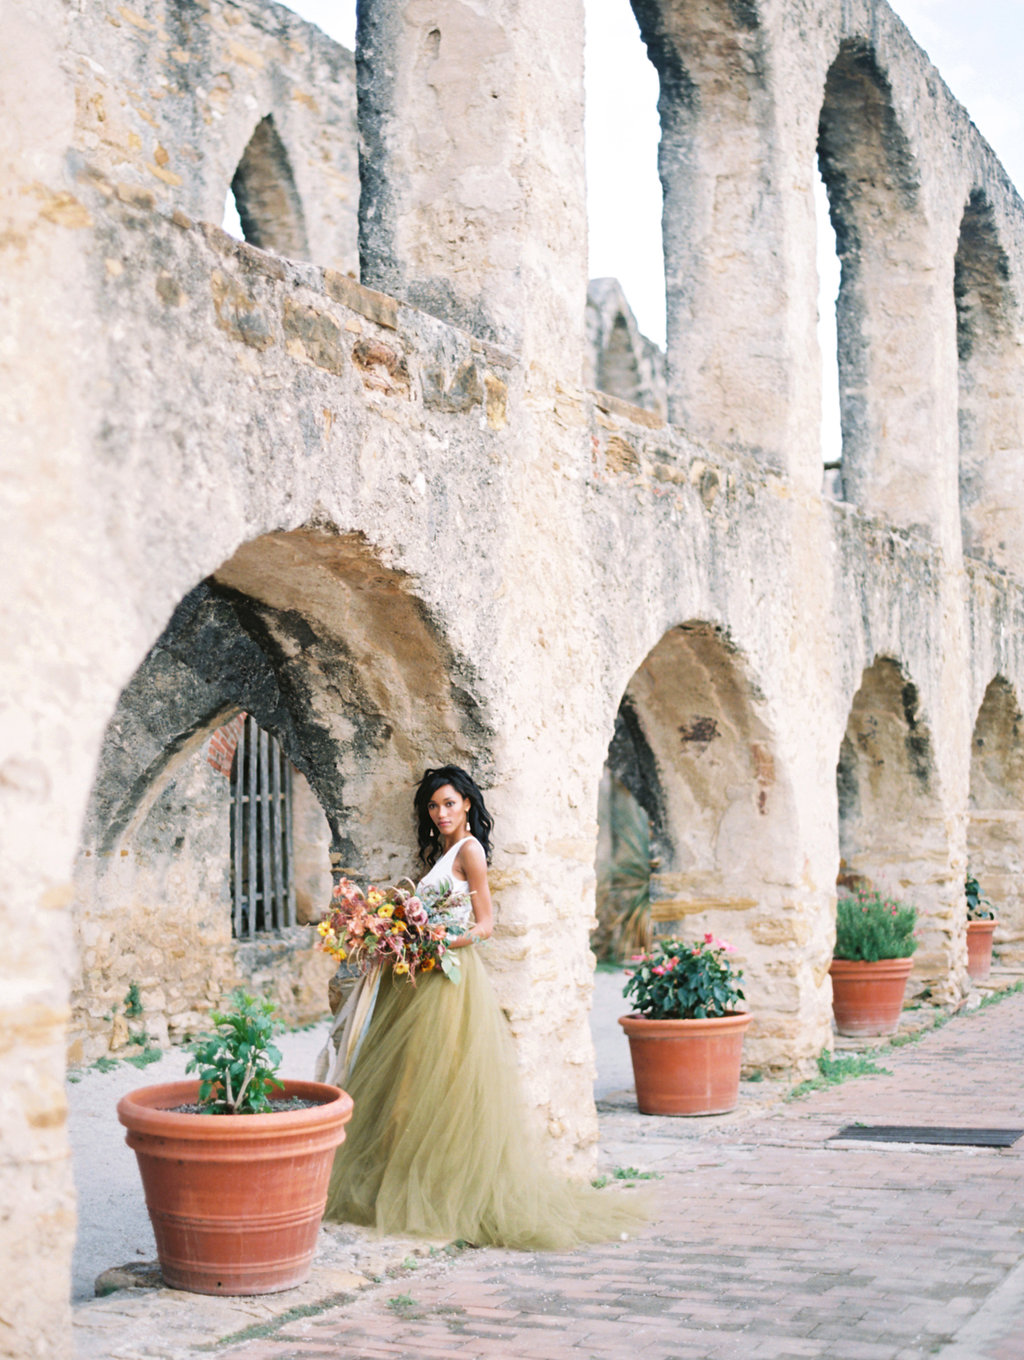 green gold wedding dresses - photo by Charla Storey http://ruffledblog.com/architectural-san-antonio-mission-wedding-inspiration